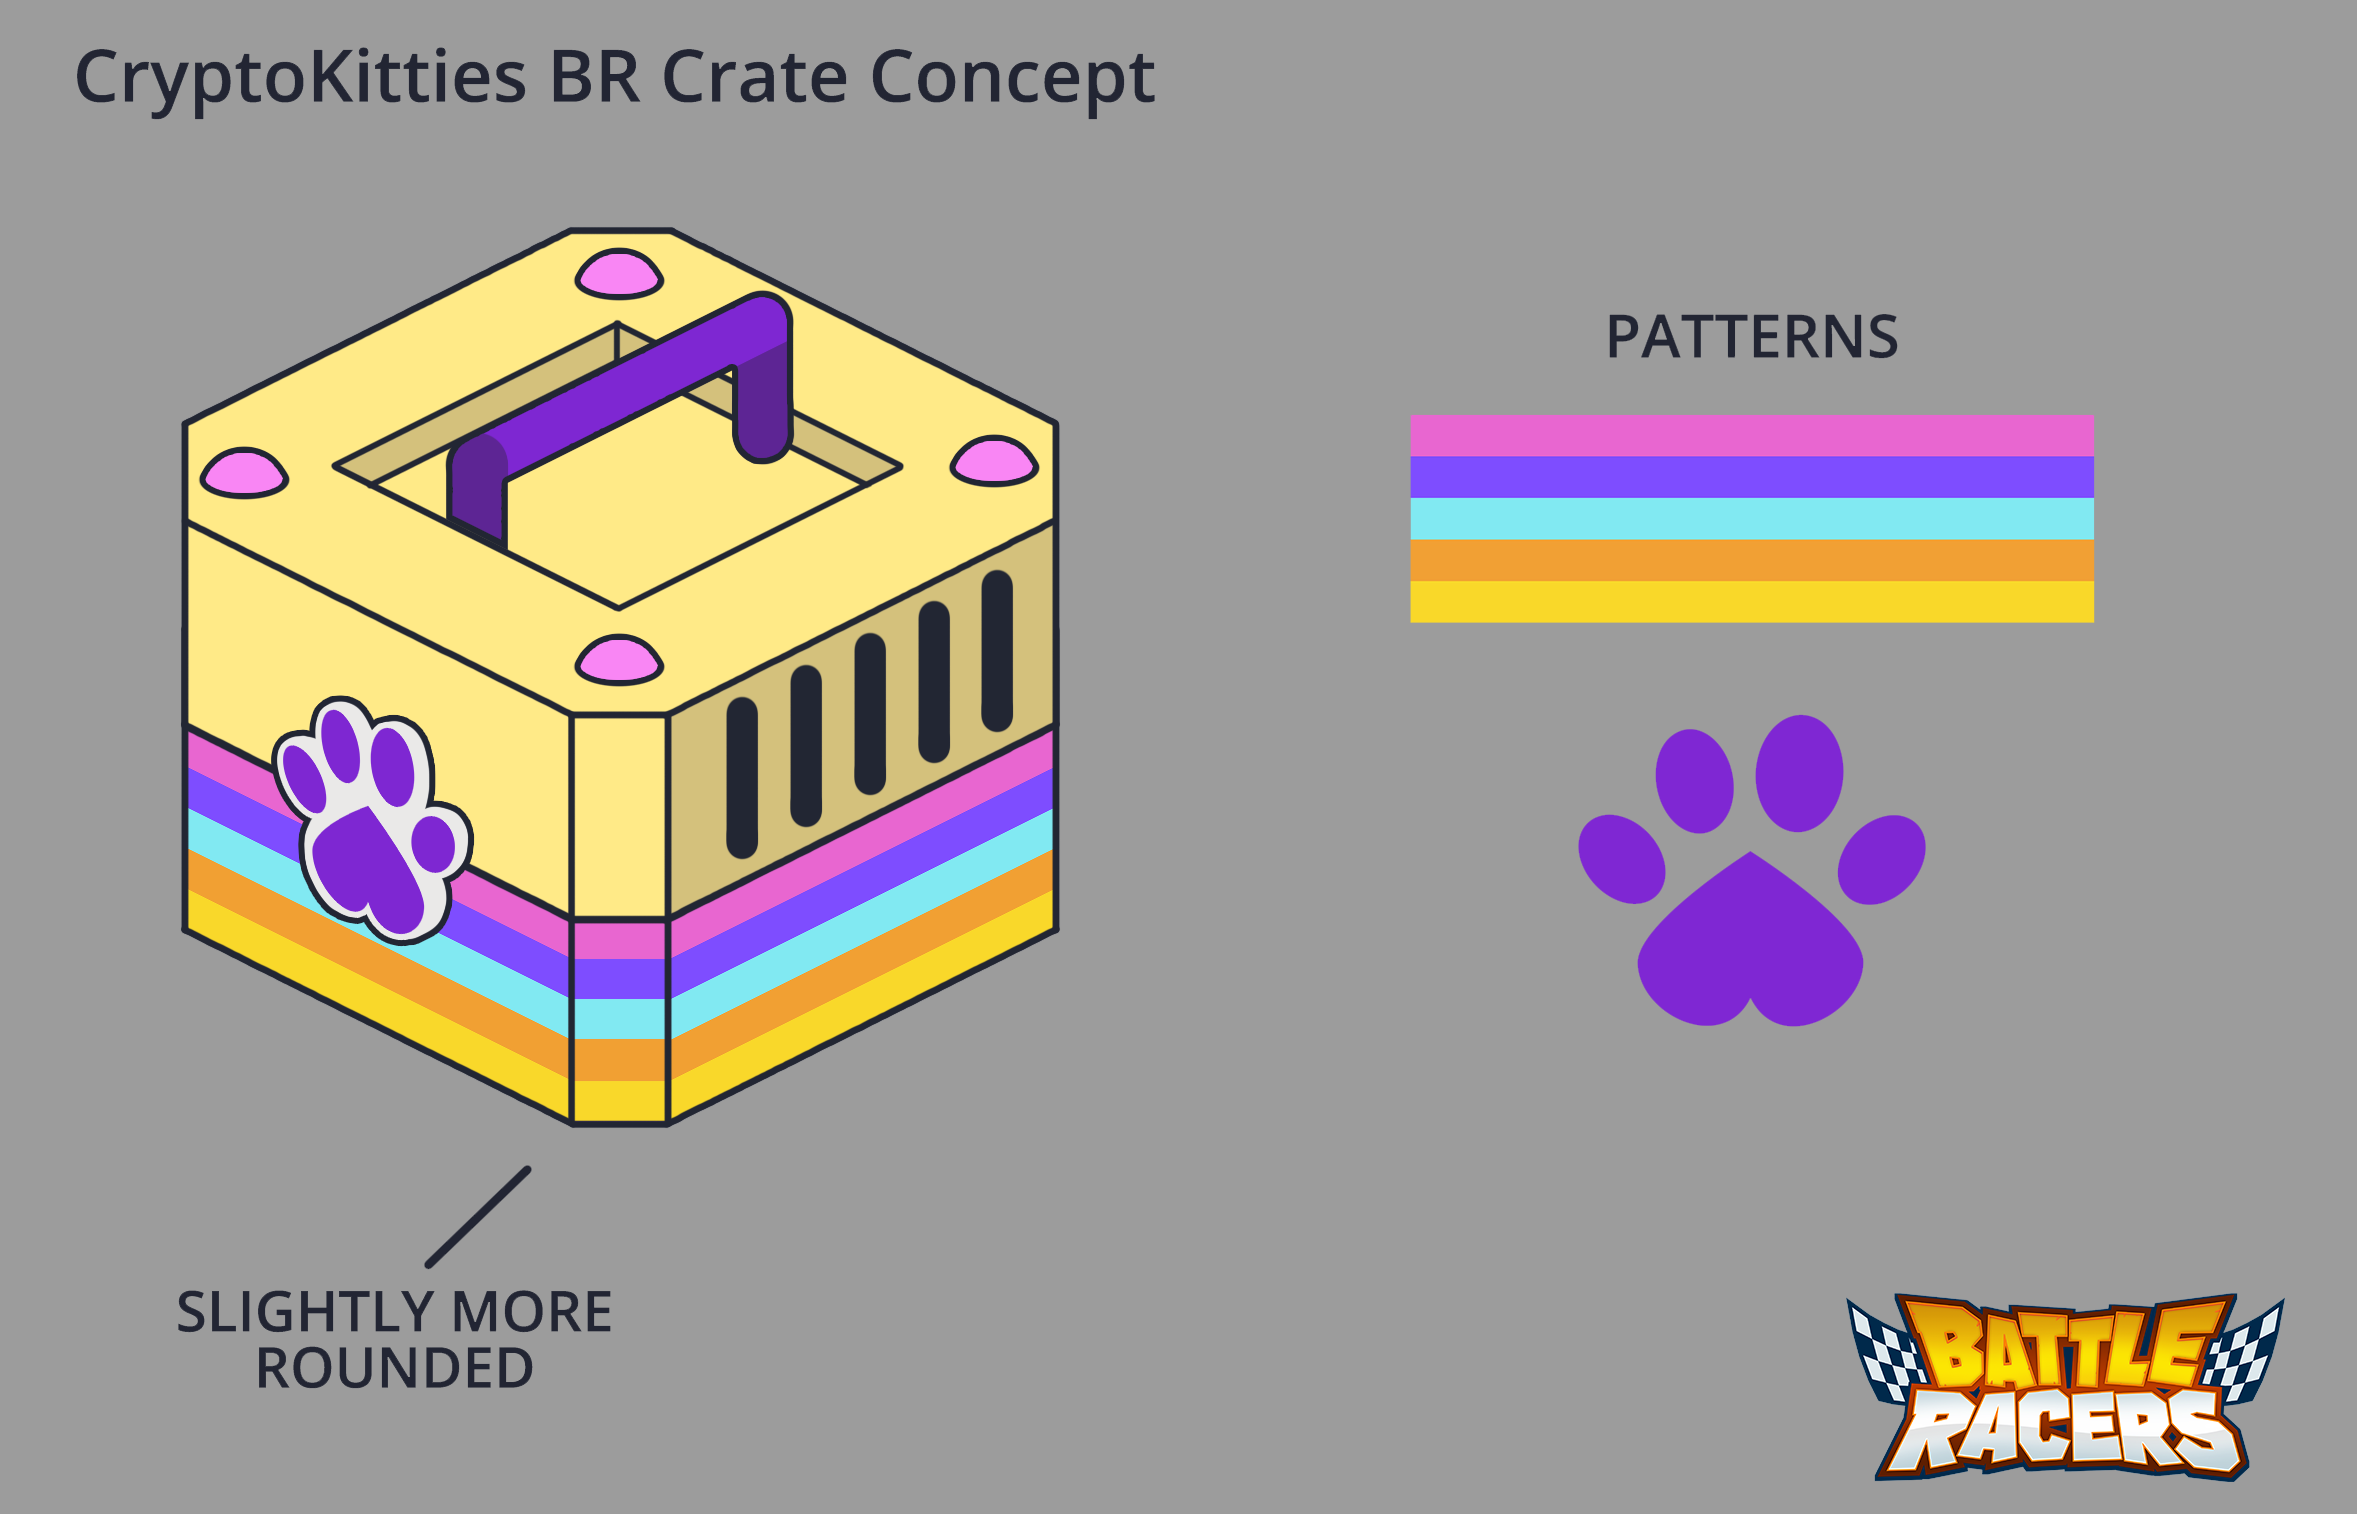 Concept art for CryptoKitties crate